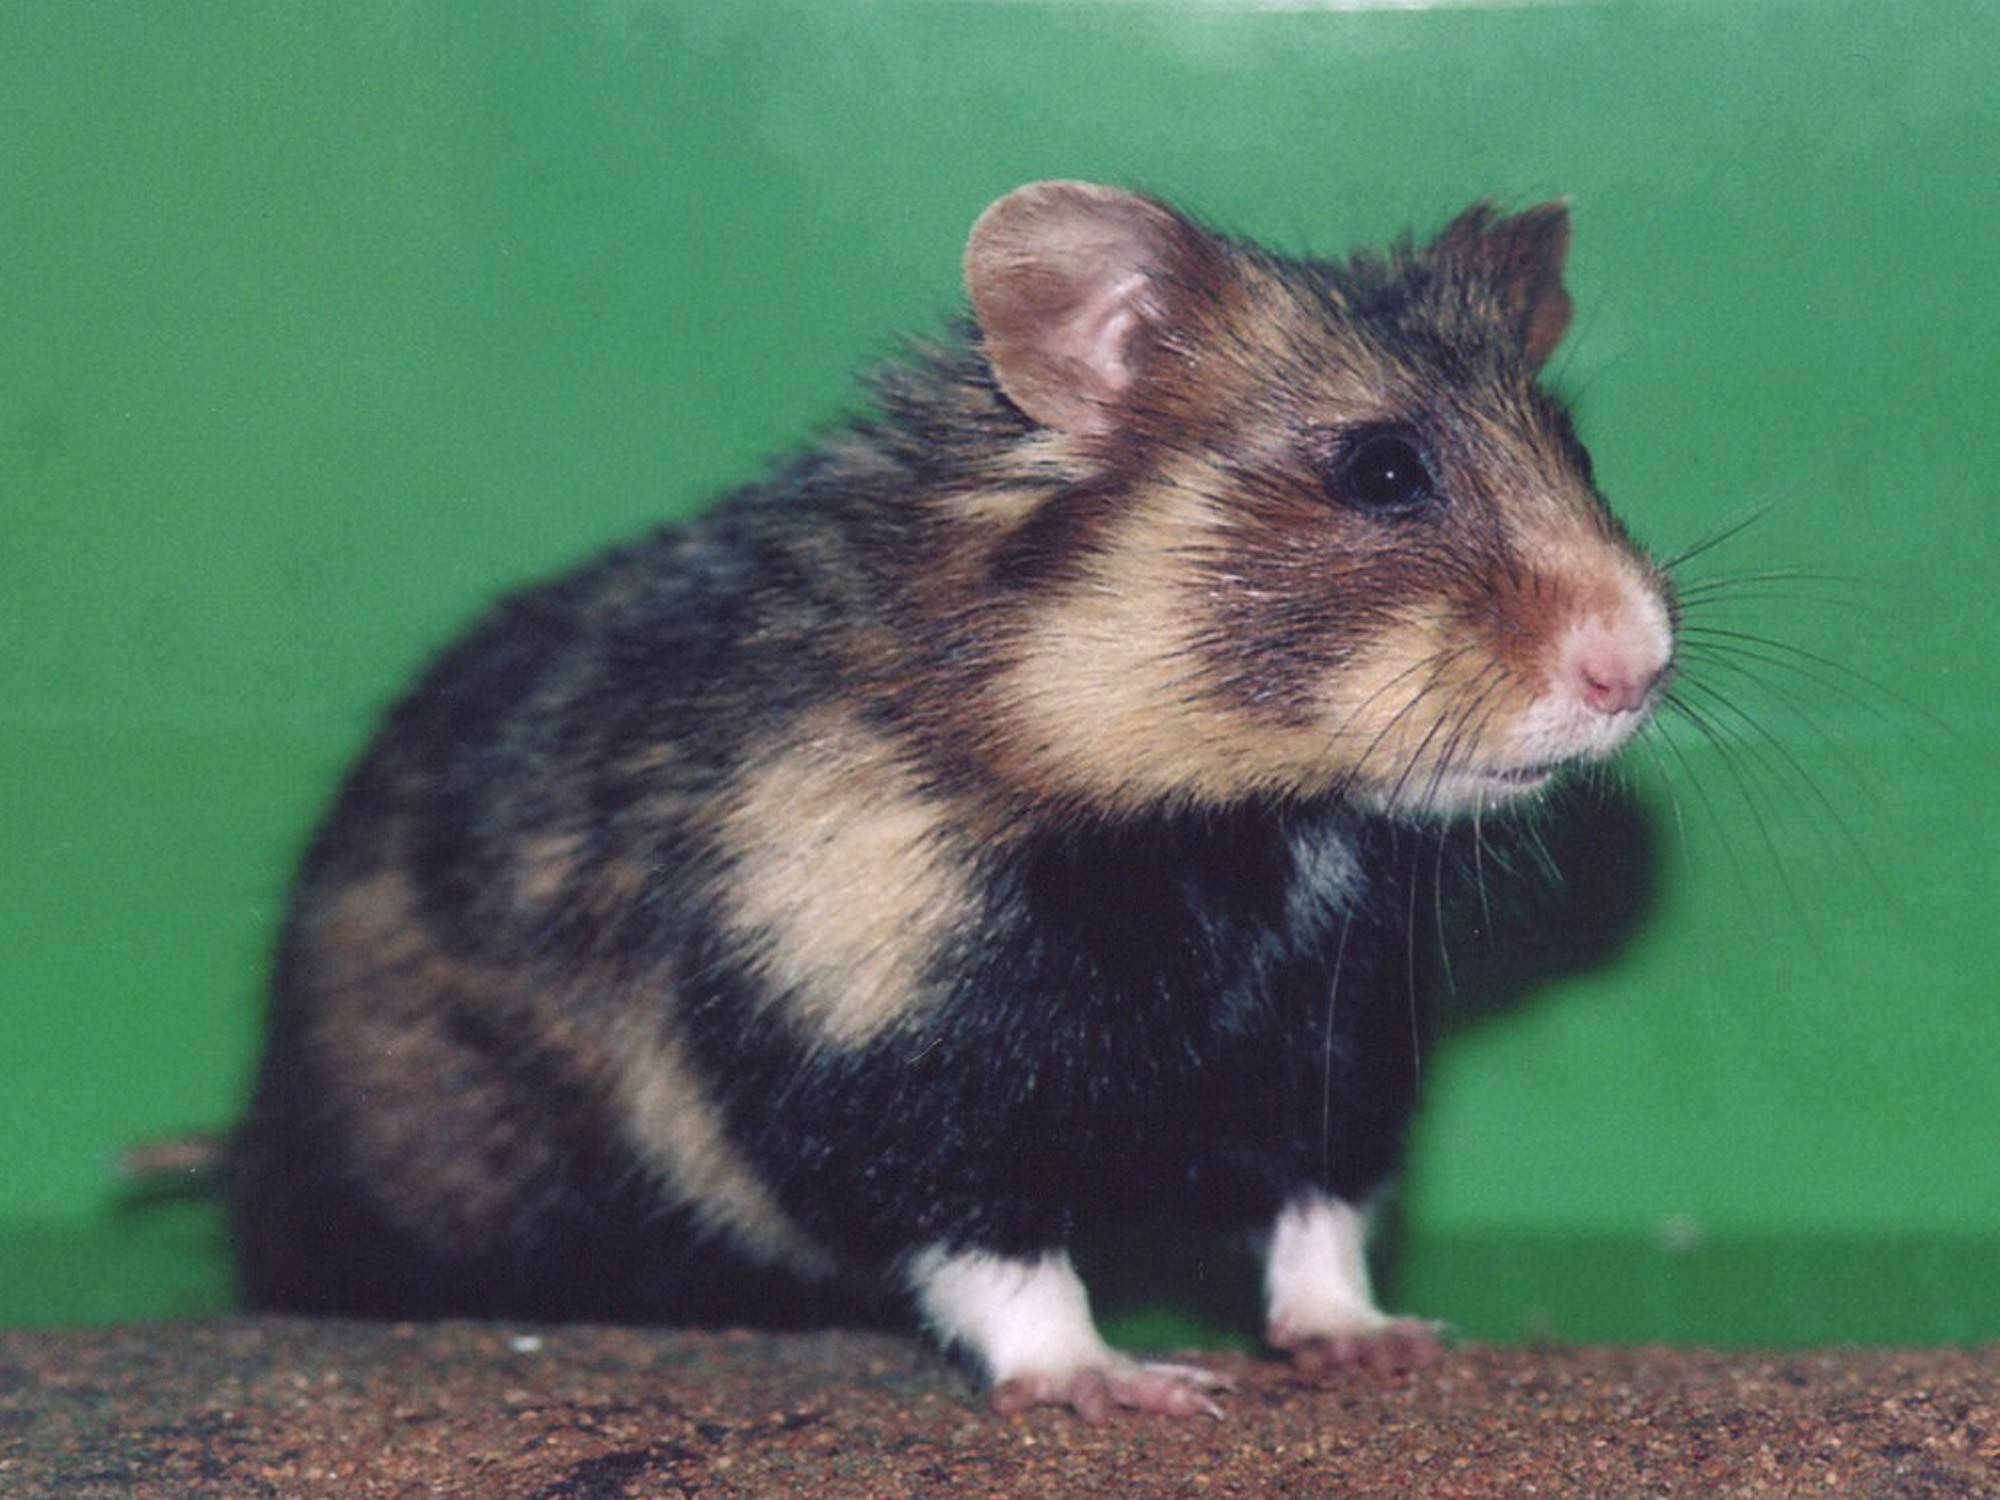 hamster wallpaper   9999   High Quality and Resolution Wallpapers 2000x1500